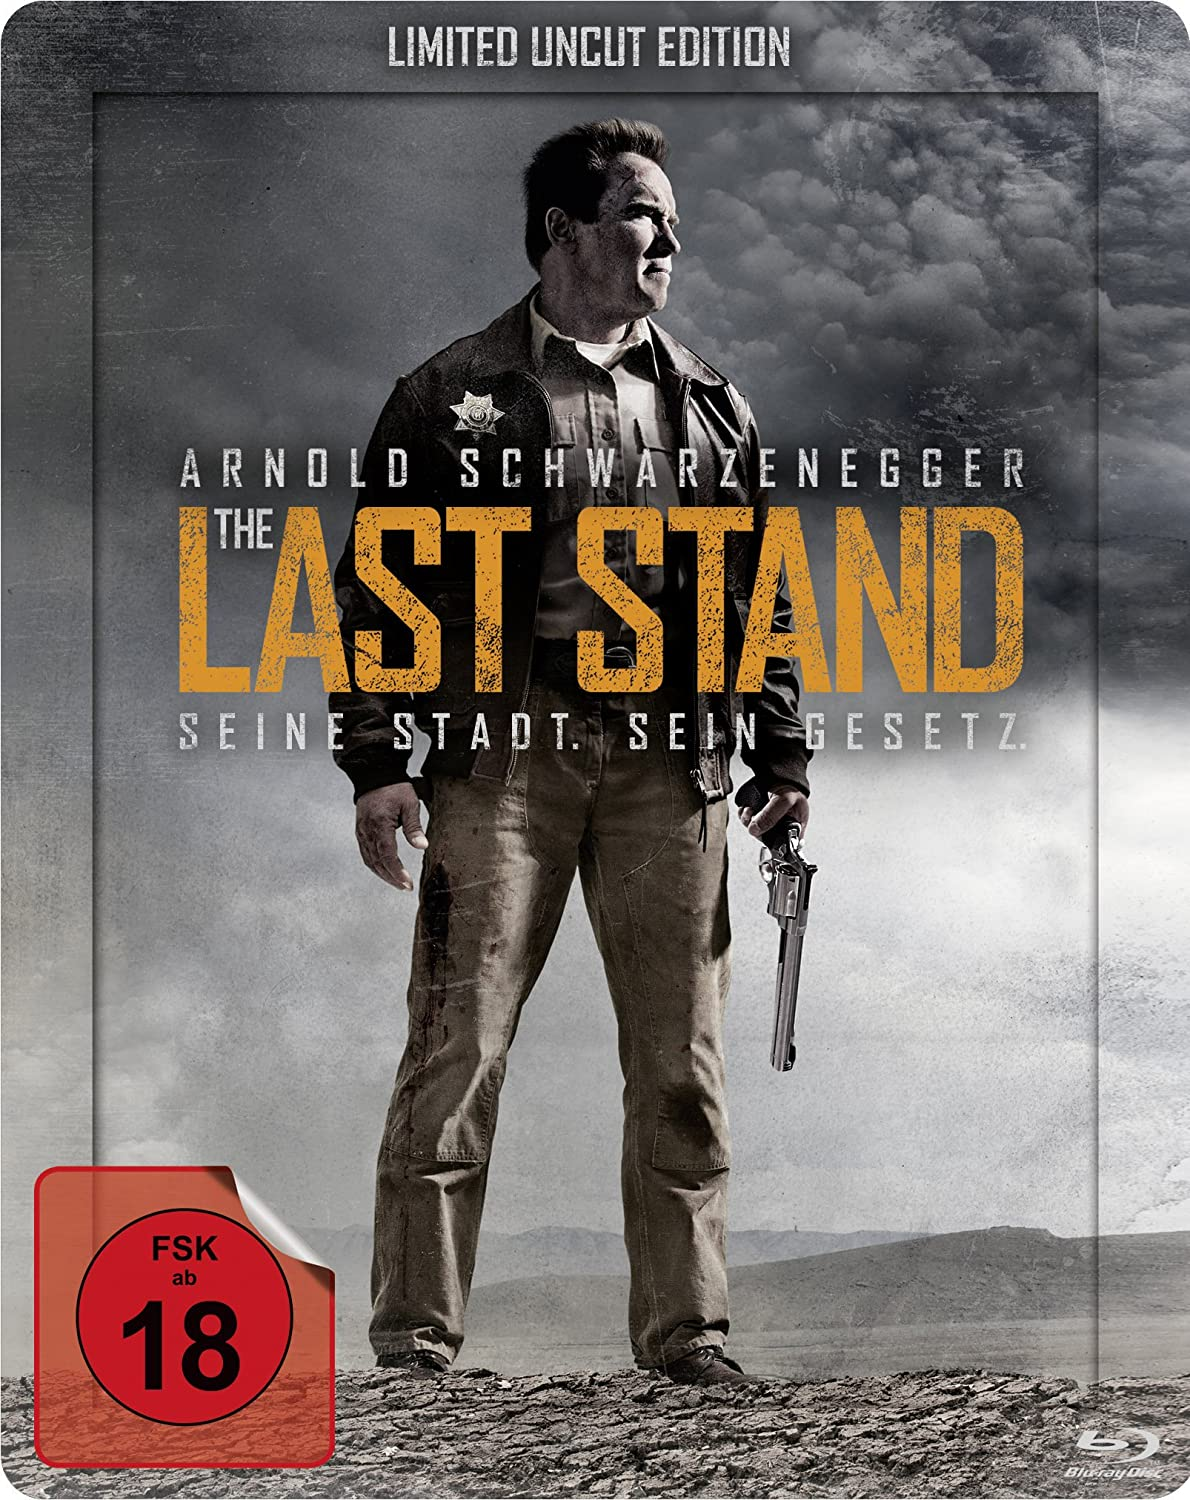 The Last Stand (Limited Uncut Edition, Steelbook) [Blu-ray] – 12,97 EUR